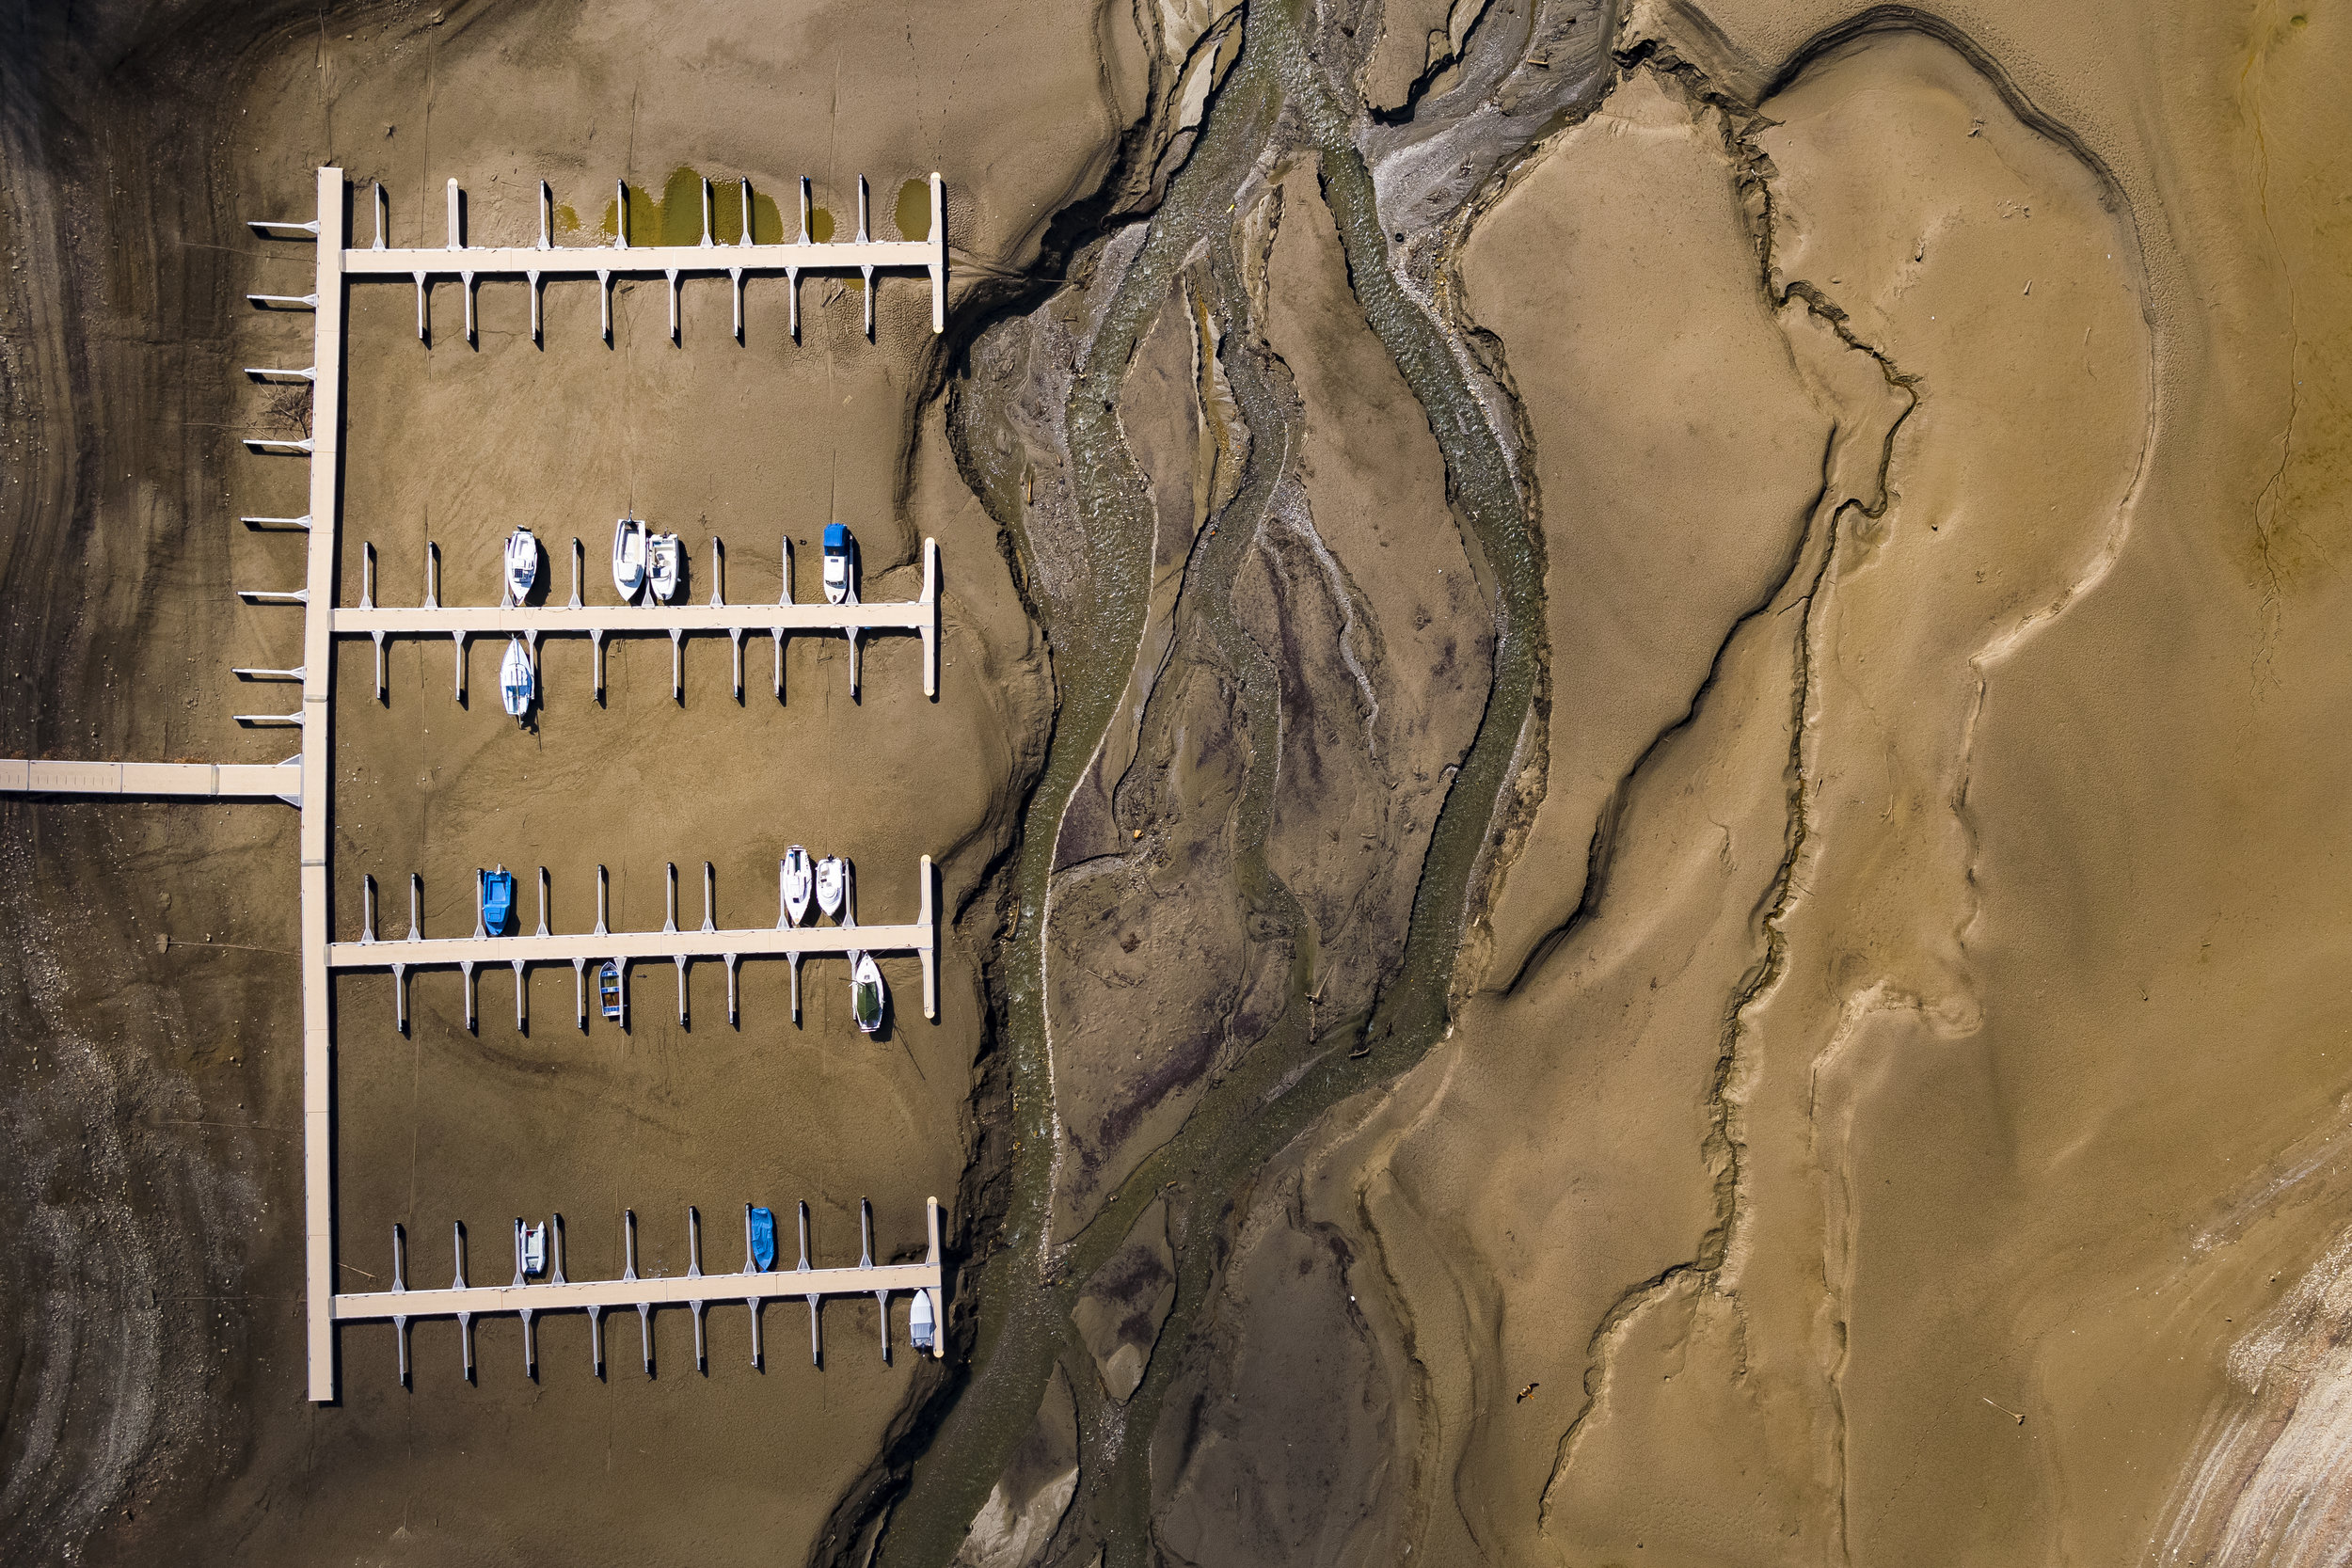 Stranded boats are pictured on the dried out shores of the Lake of Gruyere in la Roche near Bulle, Switzerland, Wednesday, March 14, 2018. The level of the artificial reservoir lake is progressively being brought down by 15 to 20m, planning for the upcoming melting of the heavy snowfalls accumulated on the surrounding mountains. (KEYSTONE/Valentin Flauraud)